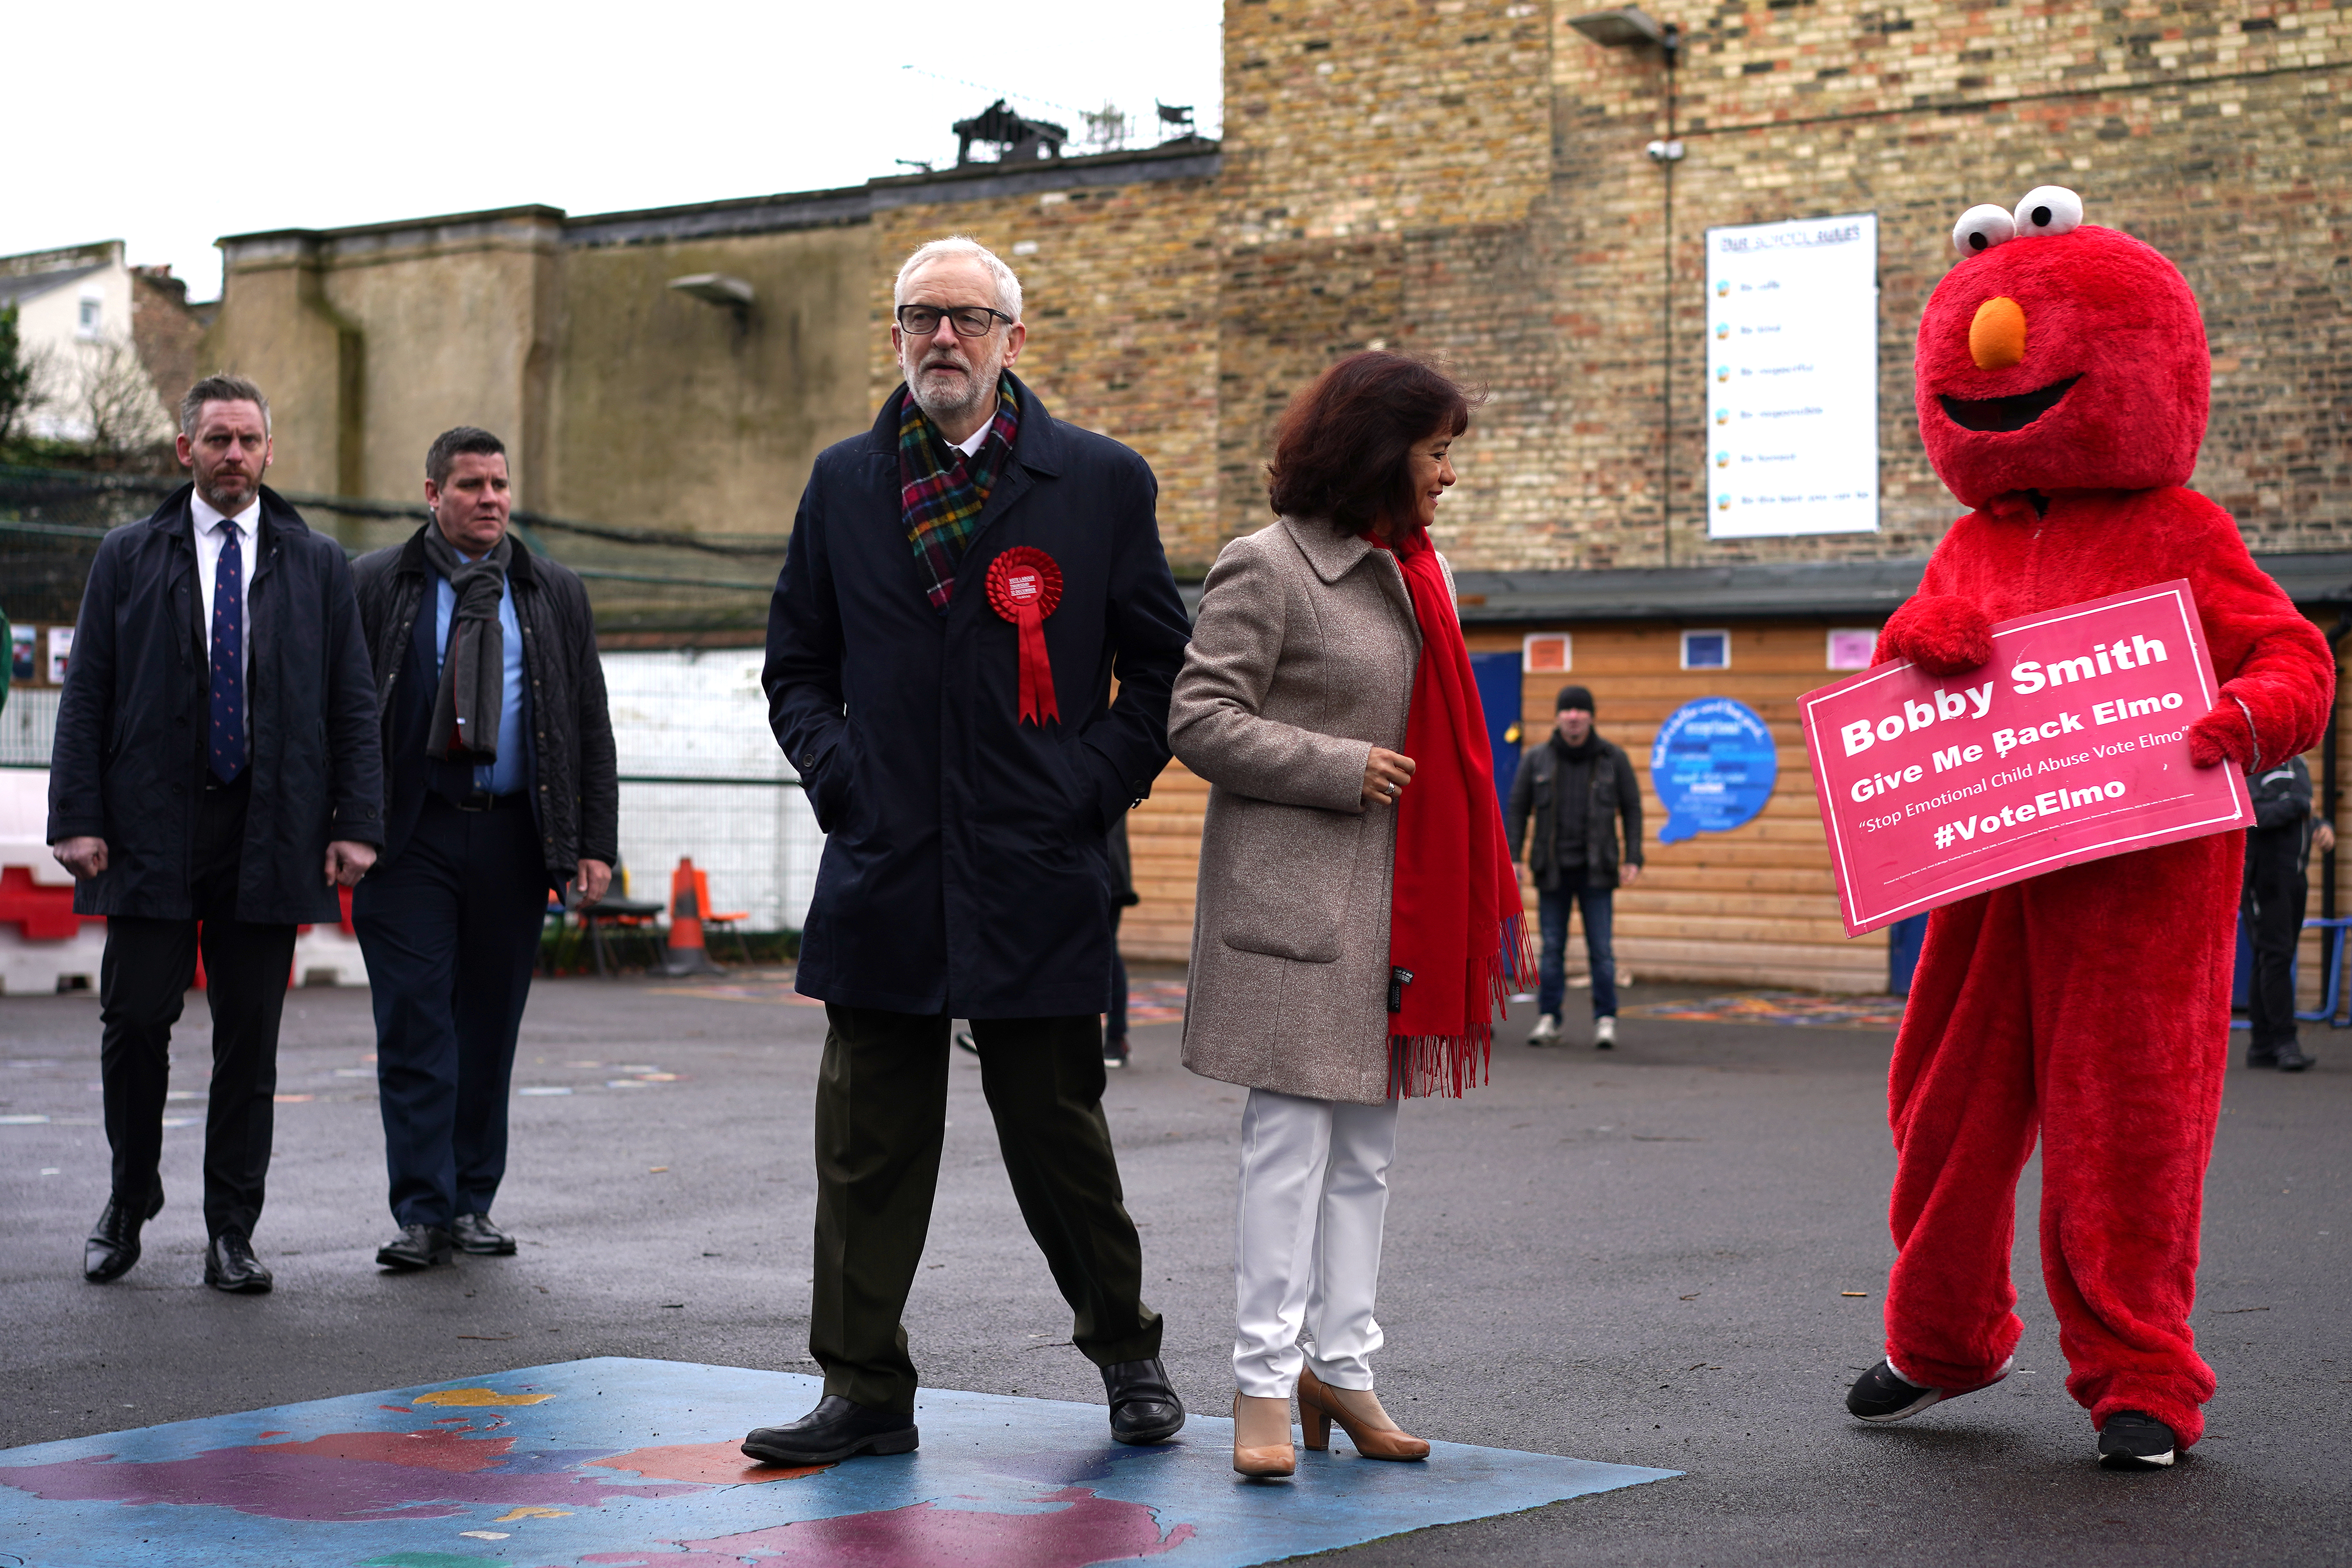 LONDON, UNITED KINGDOM - DECEMBER 12:  Labour leader Jeremy Corbyn and his wife Laura Alvarez outside the polling station at Pakeman Primary School, Holloway on December 12, 2019 in London, England.  The current Conservative Prime Minister Boris Johnson called the first UK winter election for nearly a century in an attempt to gain a working majority to break the parliamentary deadlock over Brexit. The election results from across the country will be counted overnight and an overall result is expected in the early hours of Friday morning.  (Photo by Peter Summers/Getty Images)